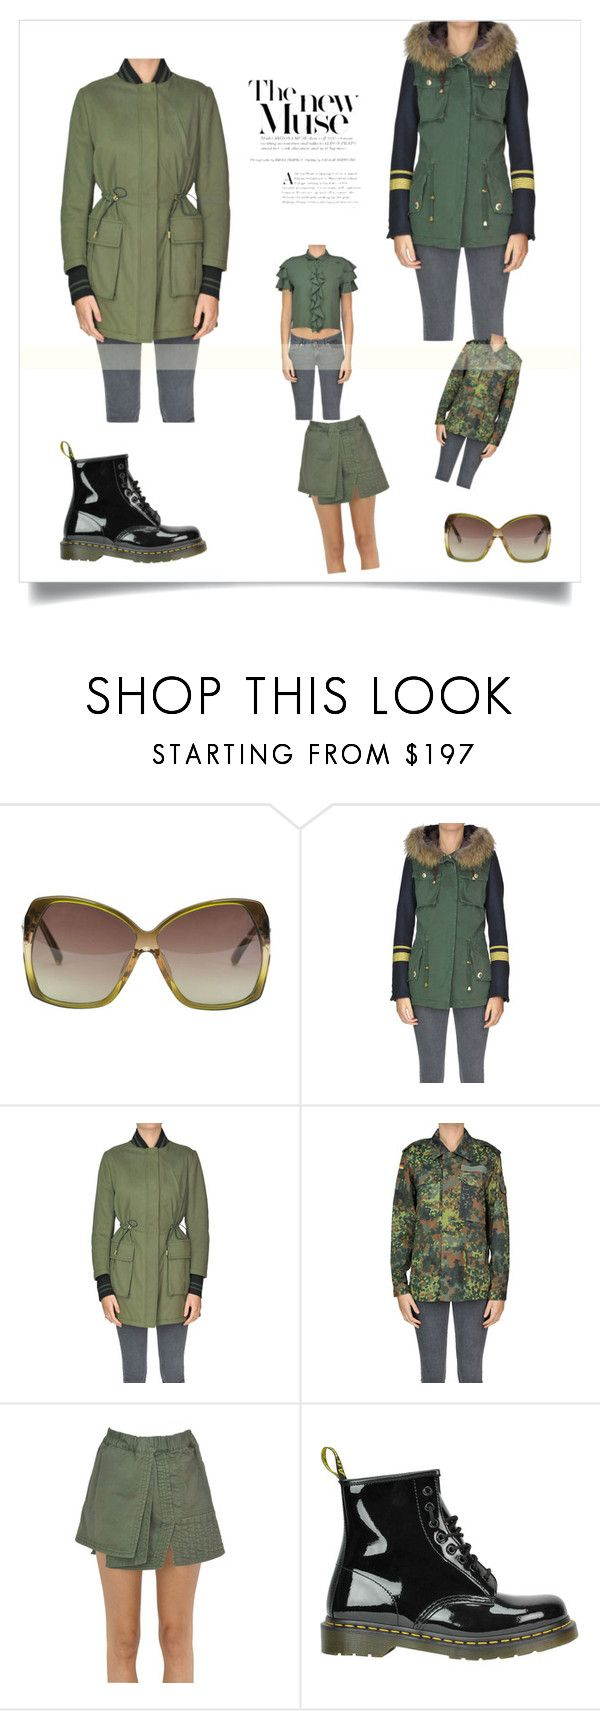 """""""Military style"""" by glamest-luxury-outlet on Polyvore featuring moda, Linda Farrow, Project - [Foce] - Singleseason, Co